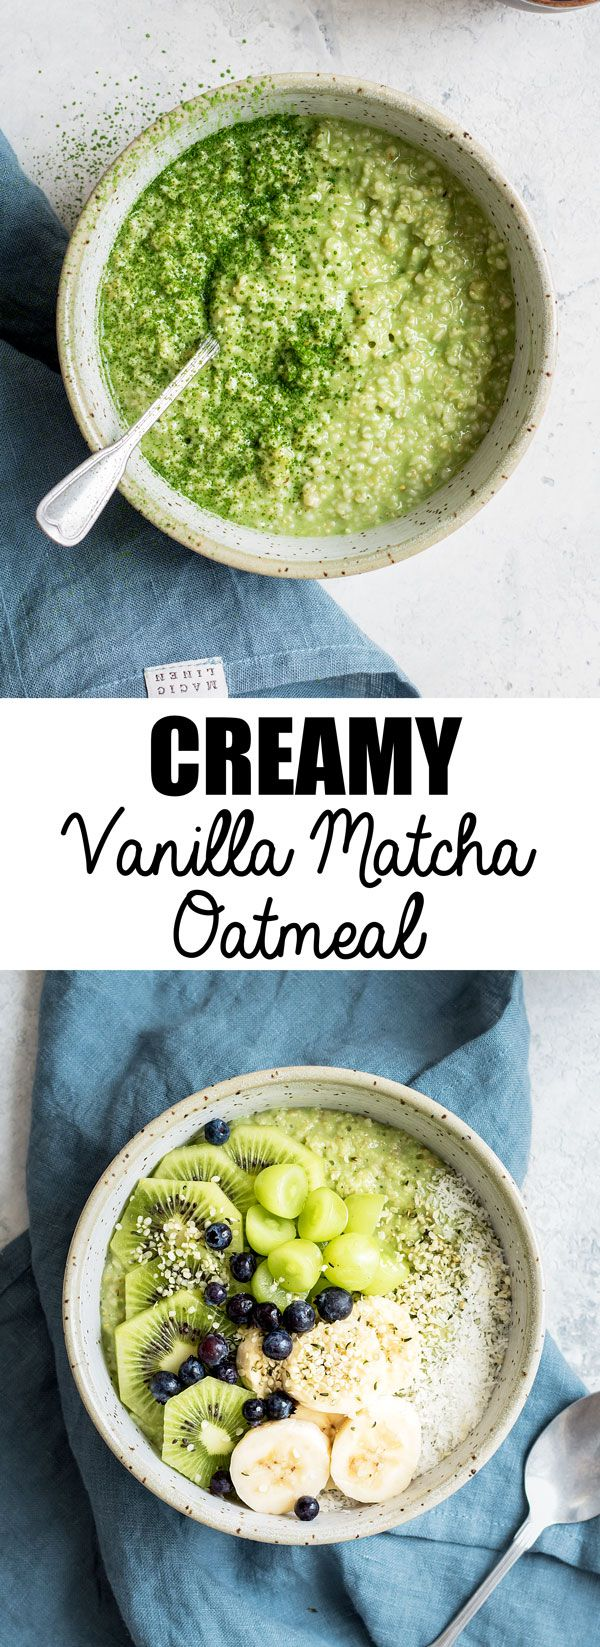 This creamy vanilla matcha oatmeal is a healthy and easy breakfast recipe made with steel-cut oats!